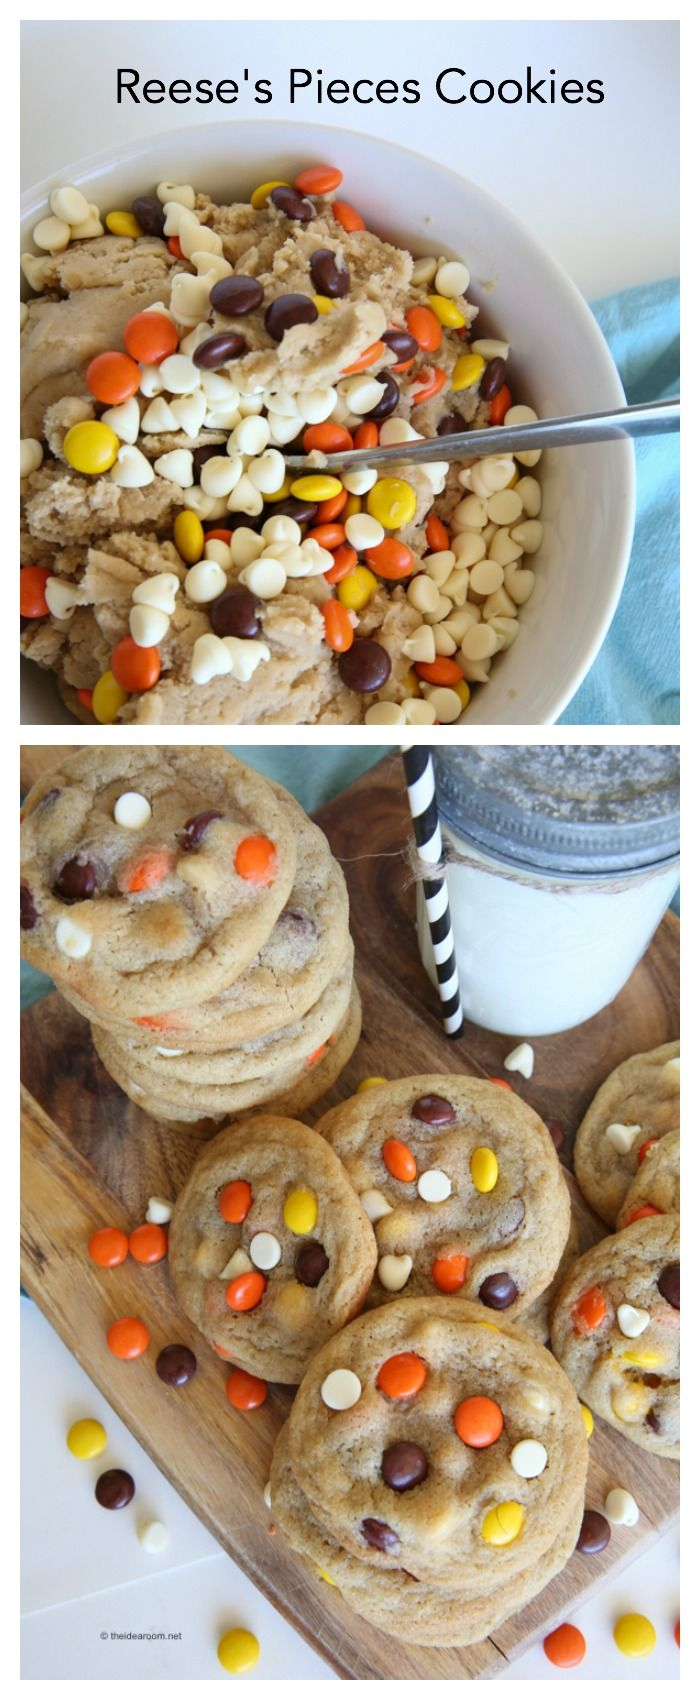 I love baking for our family and friends, especially in the fall when the weather is cooler and the Holiday Season is upon us. I recently made some delicious cookies for the family. Today I want to share this Reese's Pieces Cookie Recipe with you! I used Country Crock's Make it Yours™ Cookie Recipe, which …